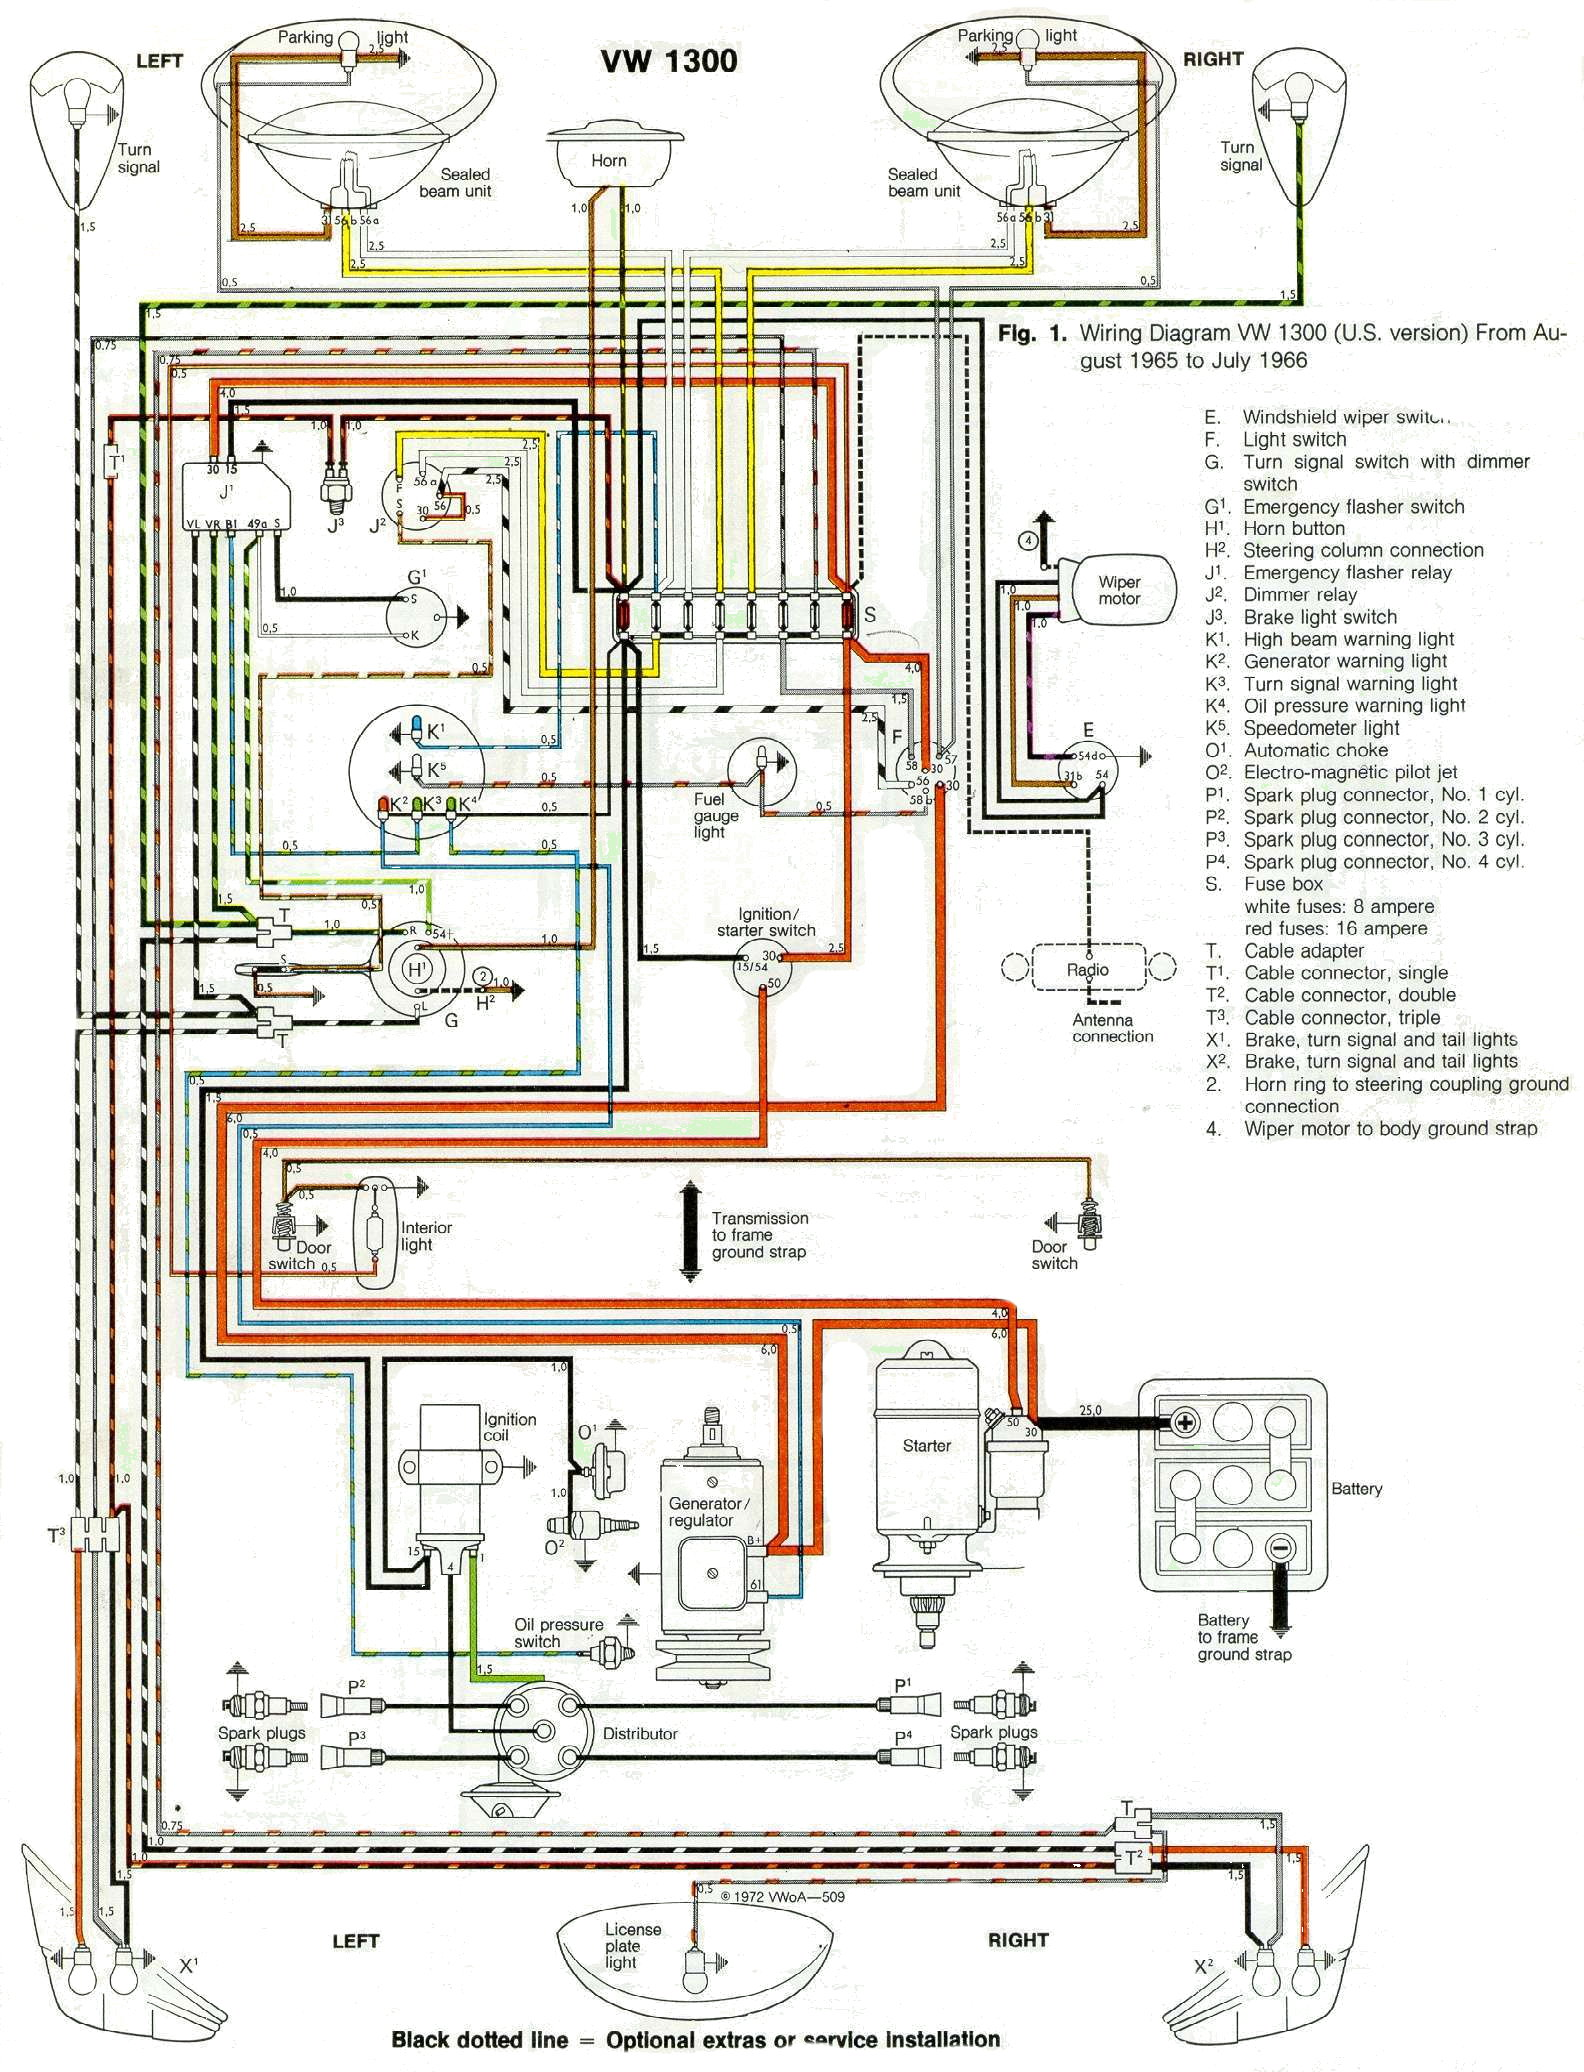 1966 Wiring 1966 wiring diagram vw bug wiring diagram at readyjetset.co